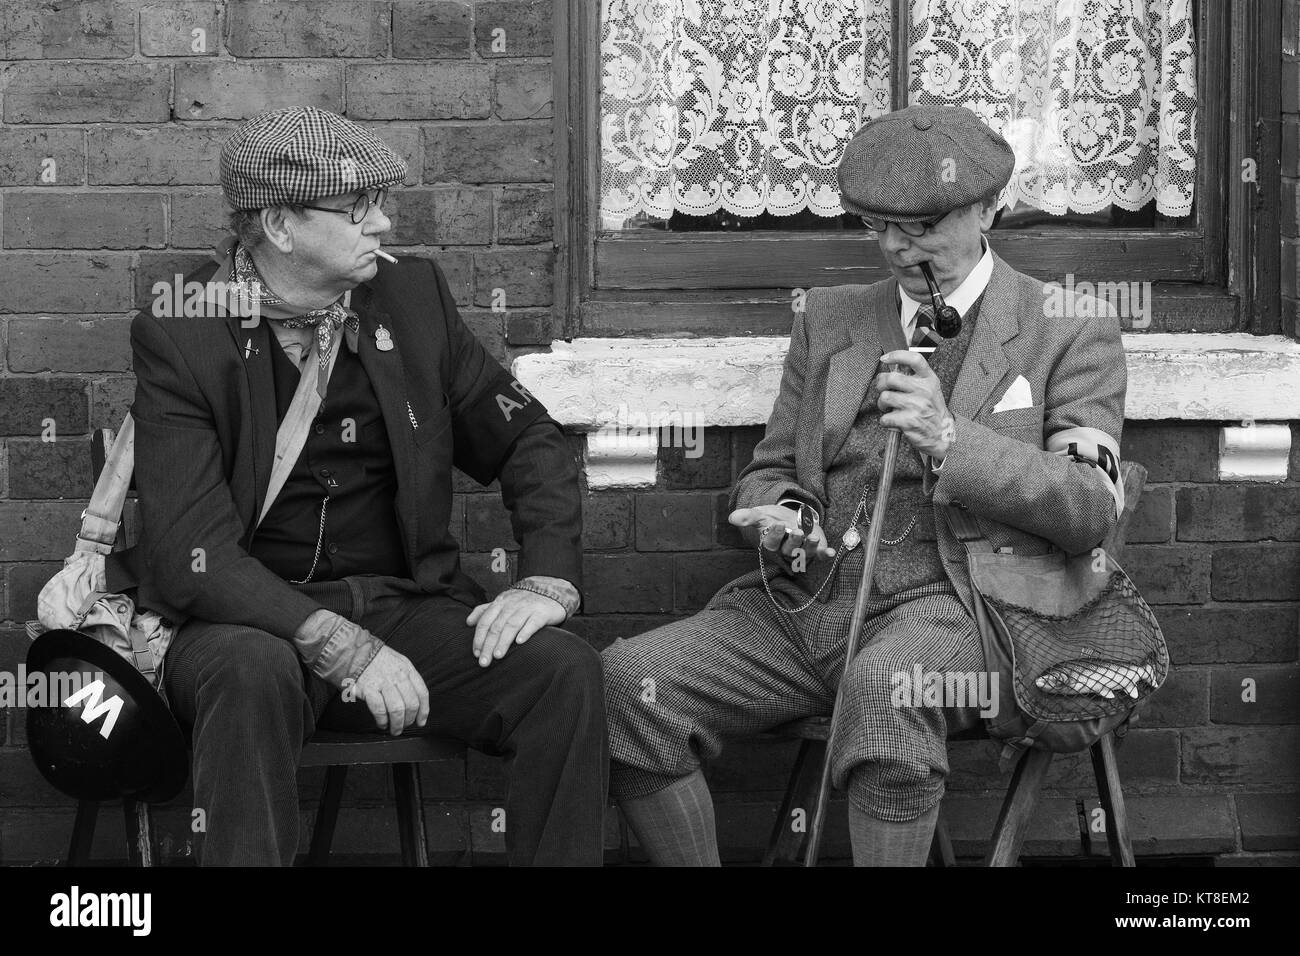 1940s Re-enactor at the Black Country Living Museum in Dudley, England, UK - Stock Image